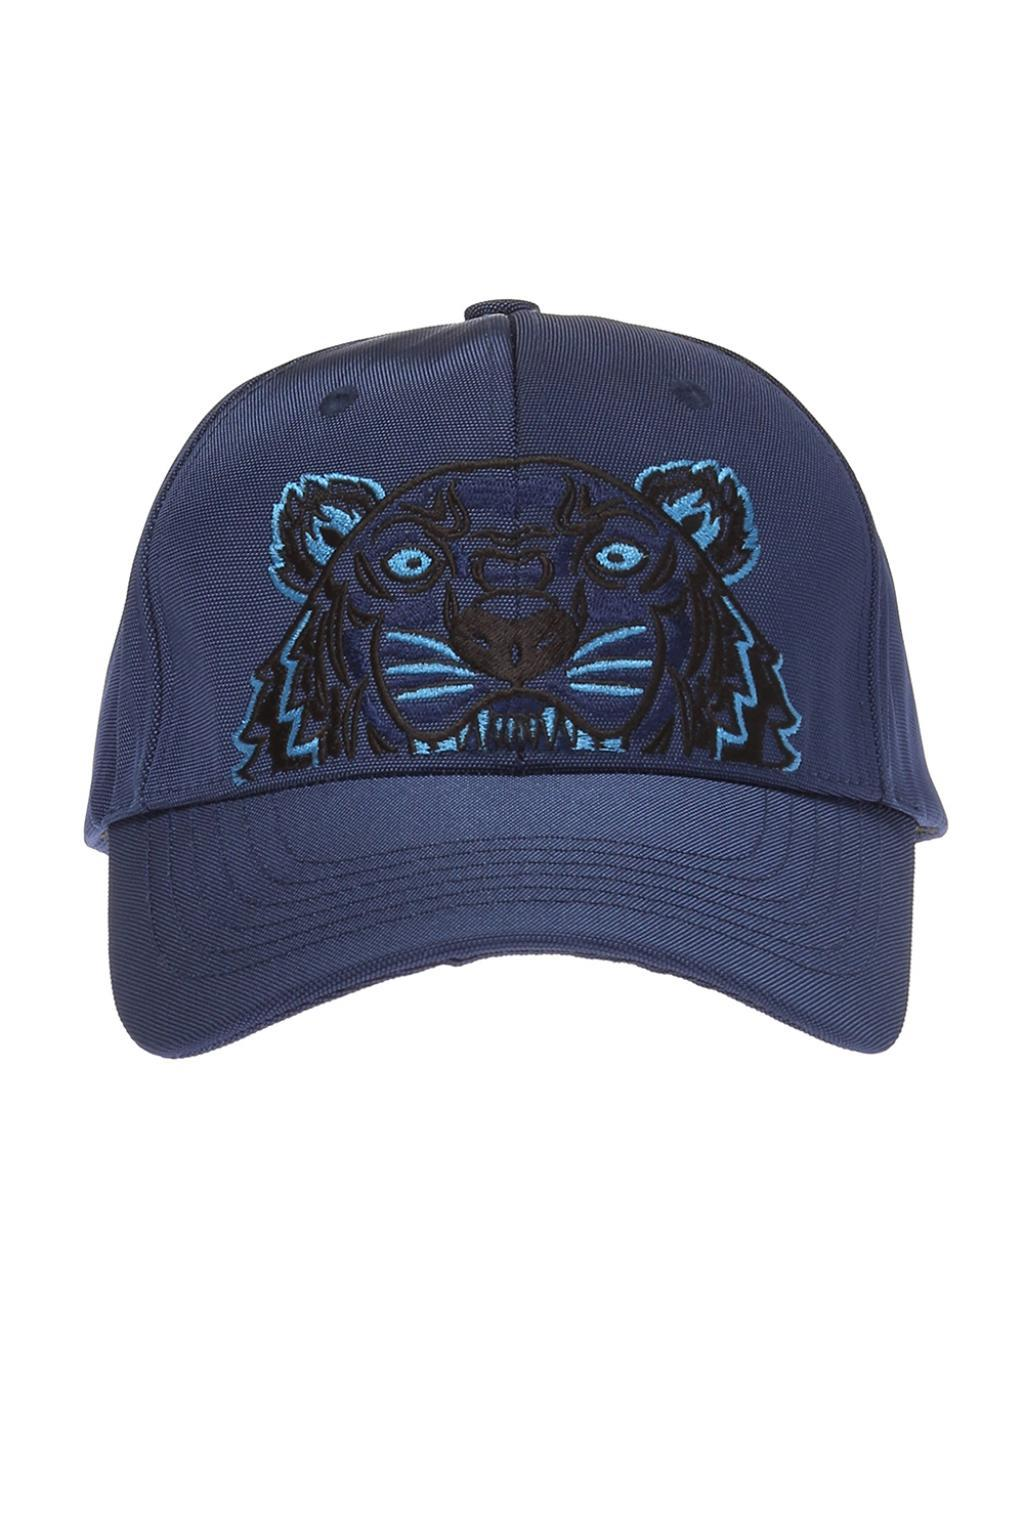 4f3e88802 KENZO Baseball Cap With A Tiger Head Motif in Blue for Men - Lyst